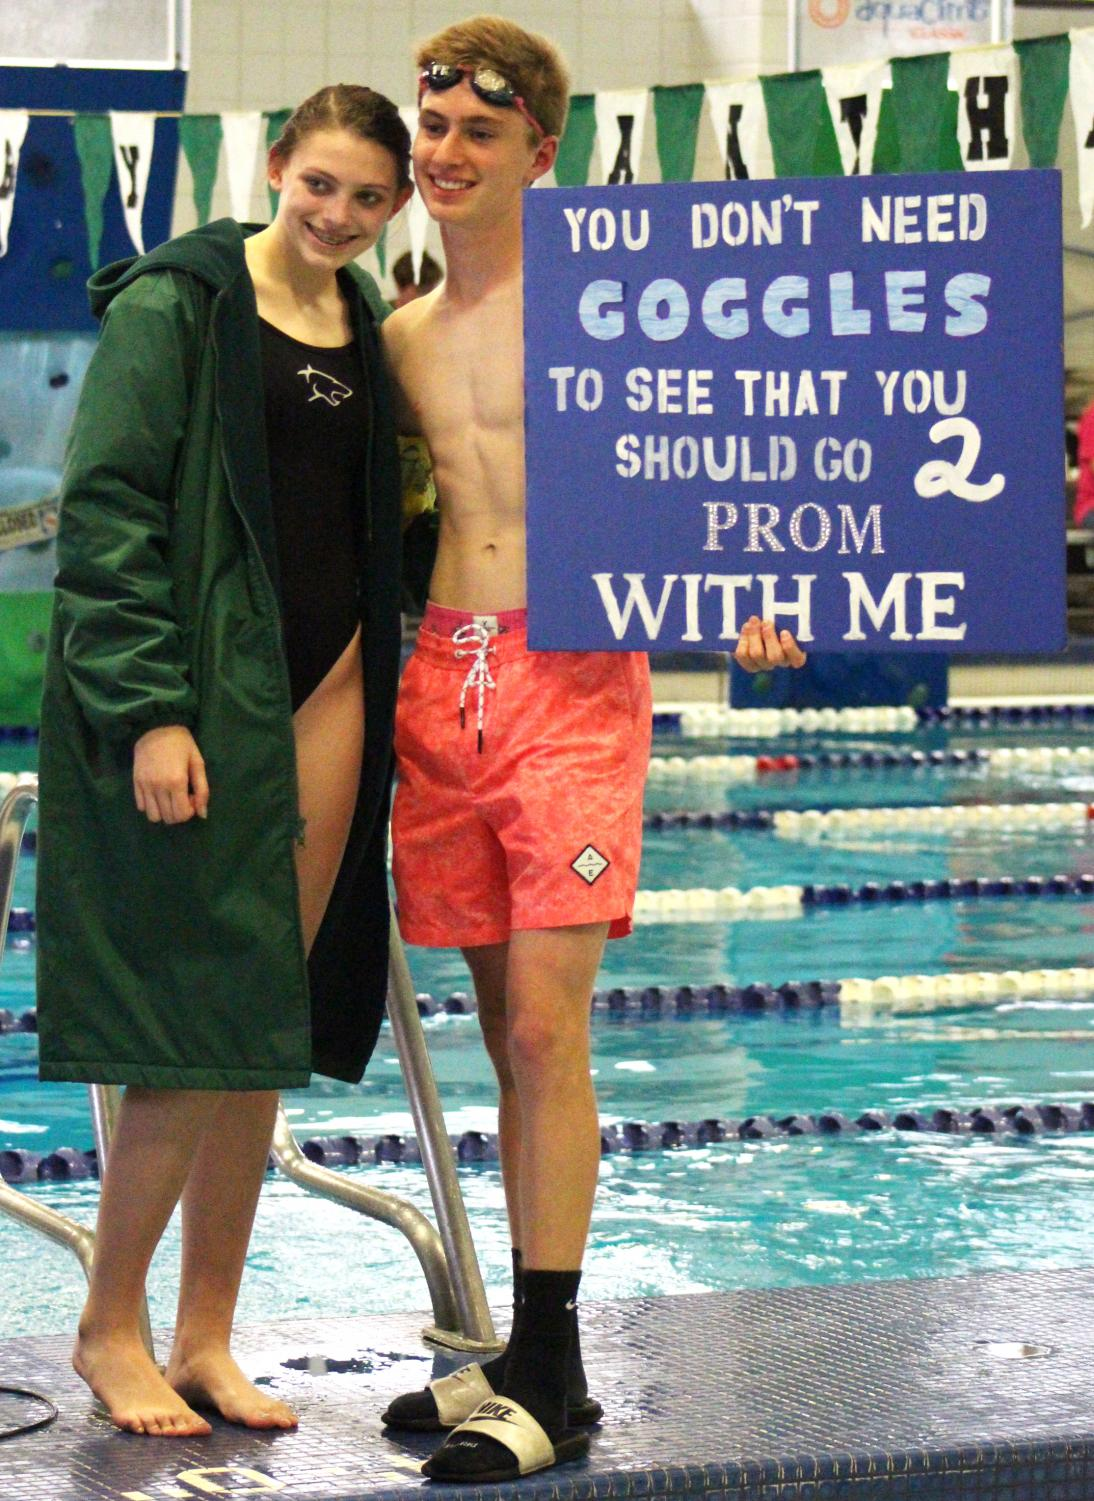 Junior+Clayton+Simmons+with+his+swim+themed+promposal+for+sophomore+Presley+Brunecz.